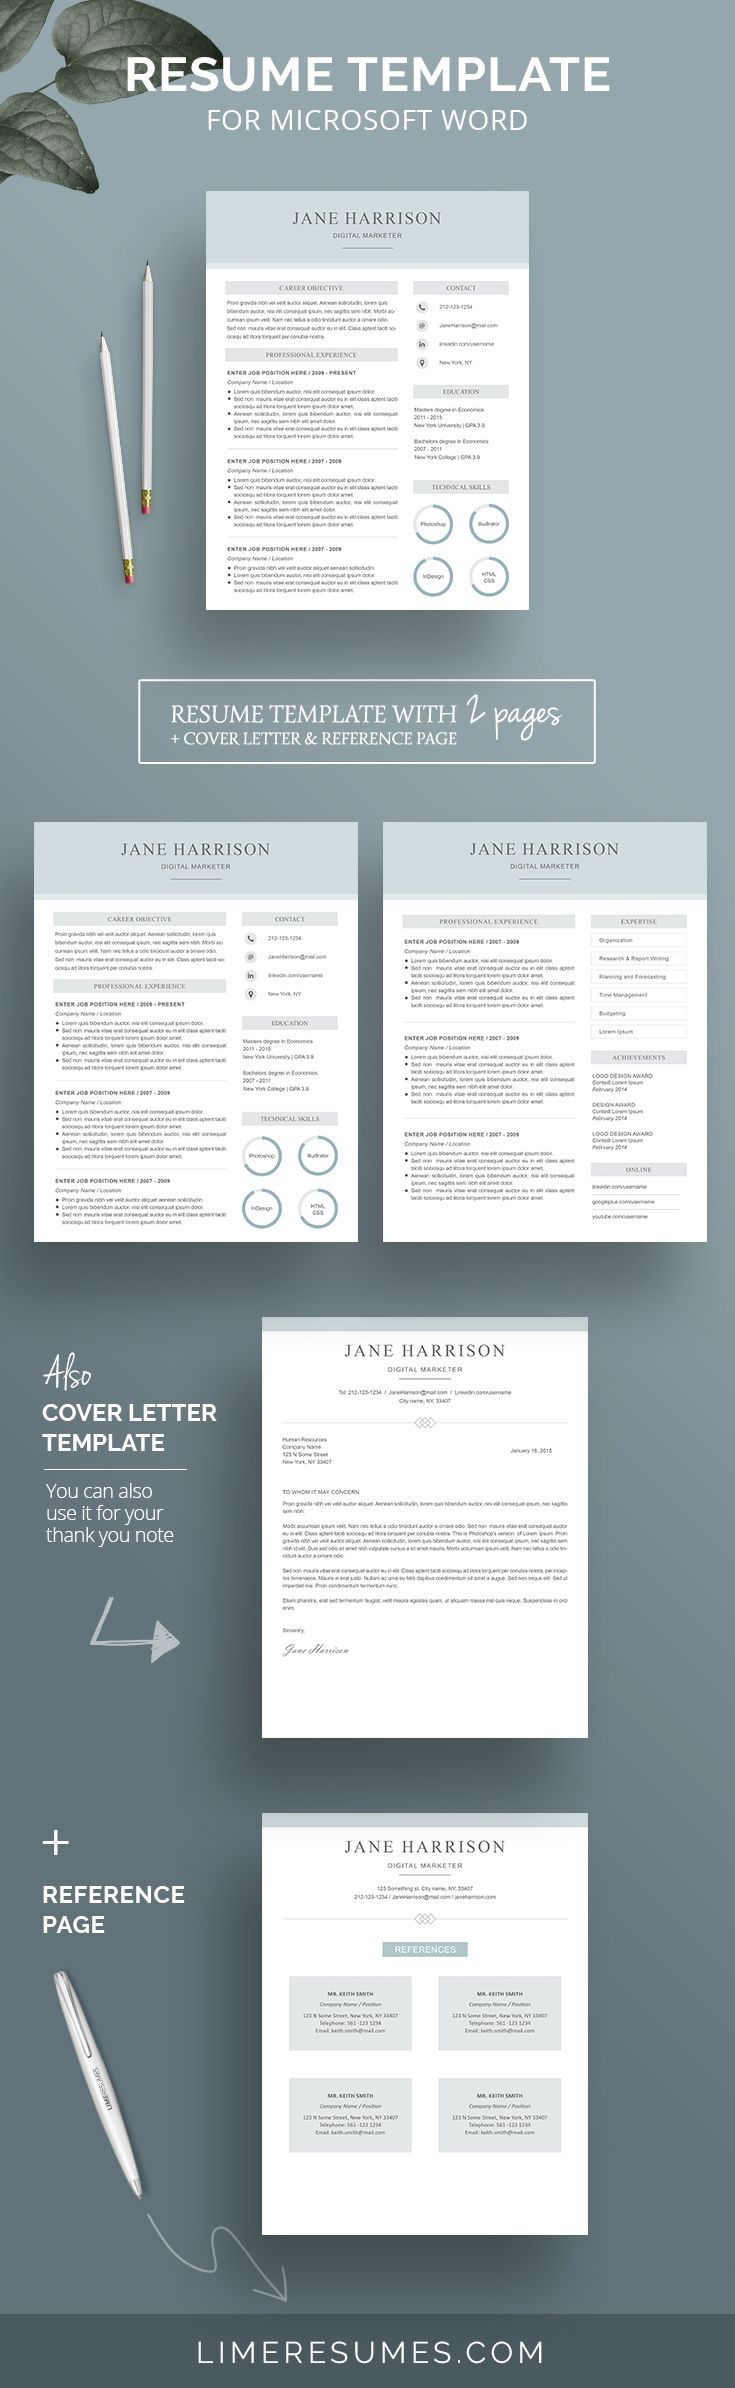 fax cover letter word template%0A Modern Resume Template     Page Resume